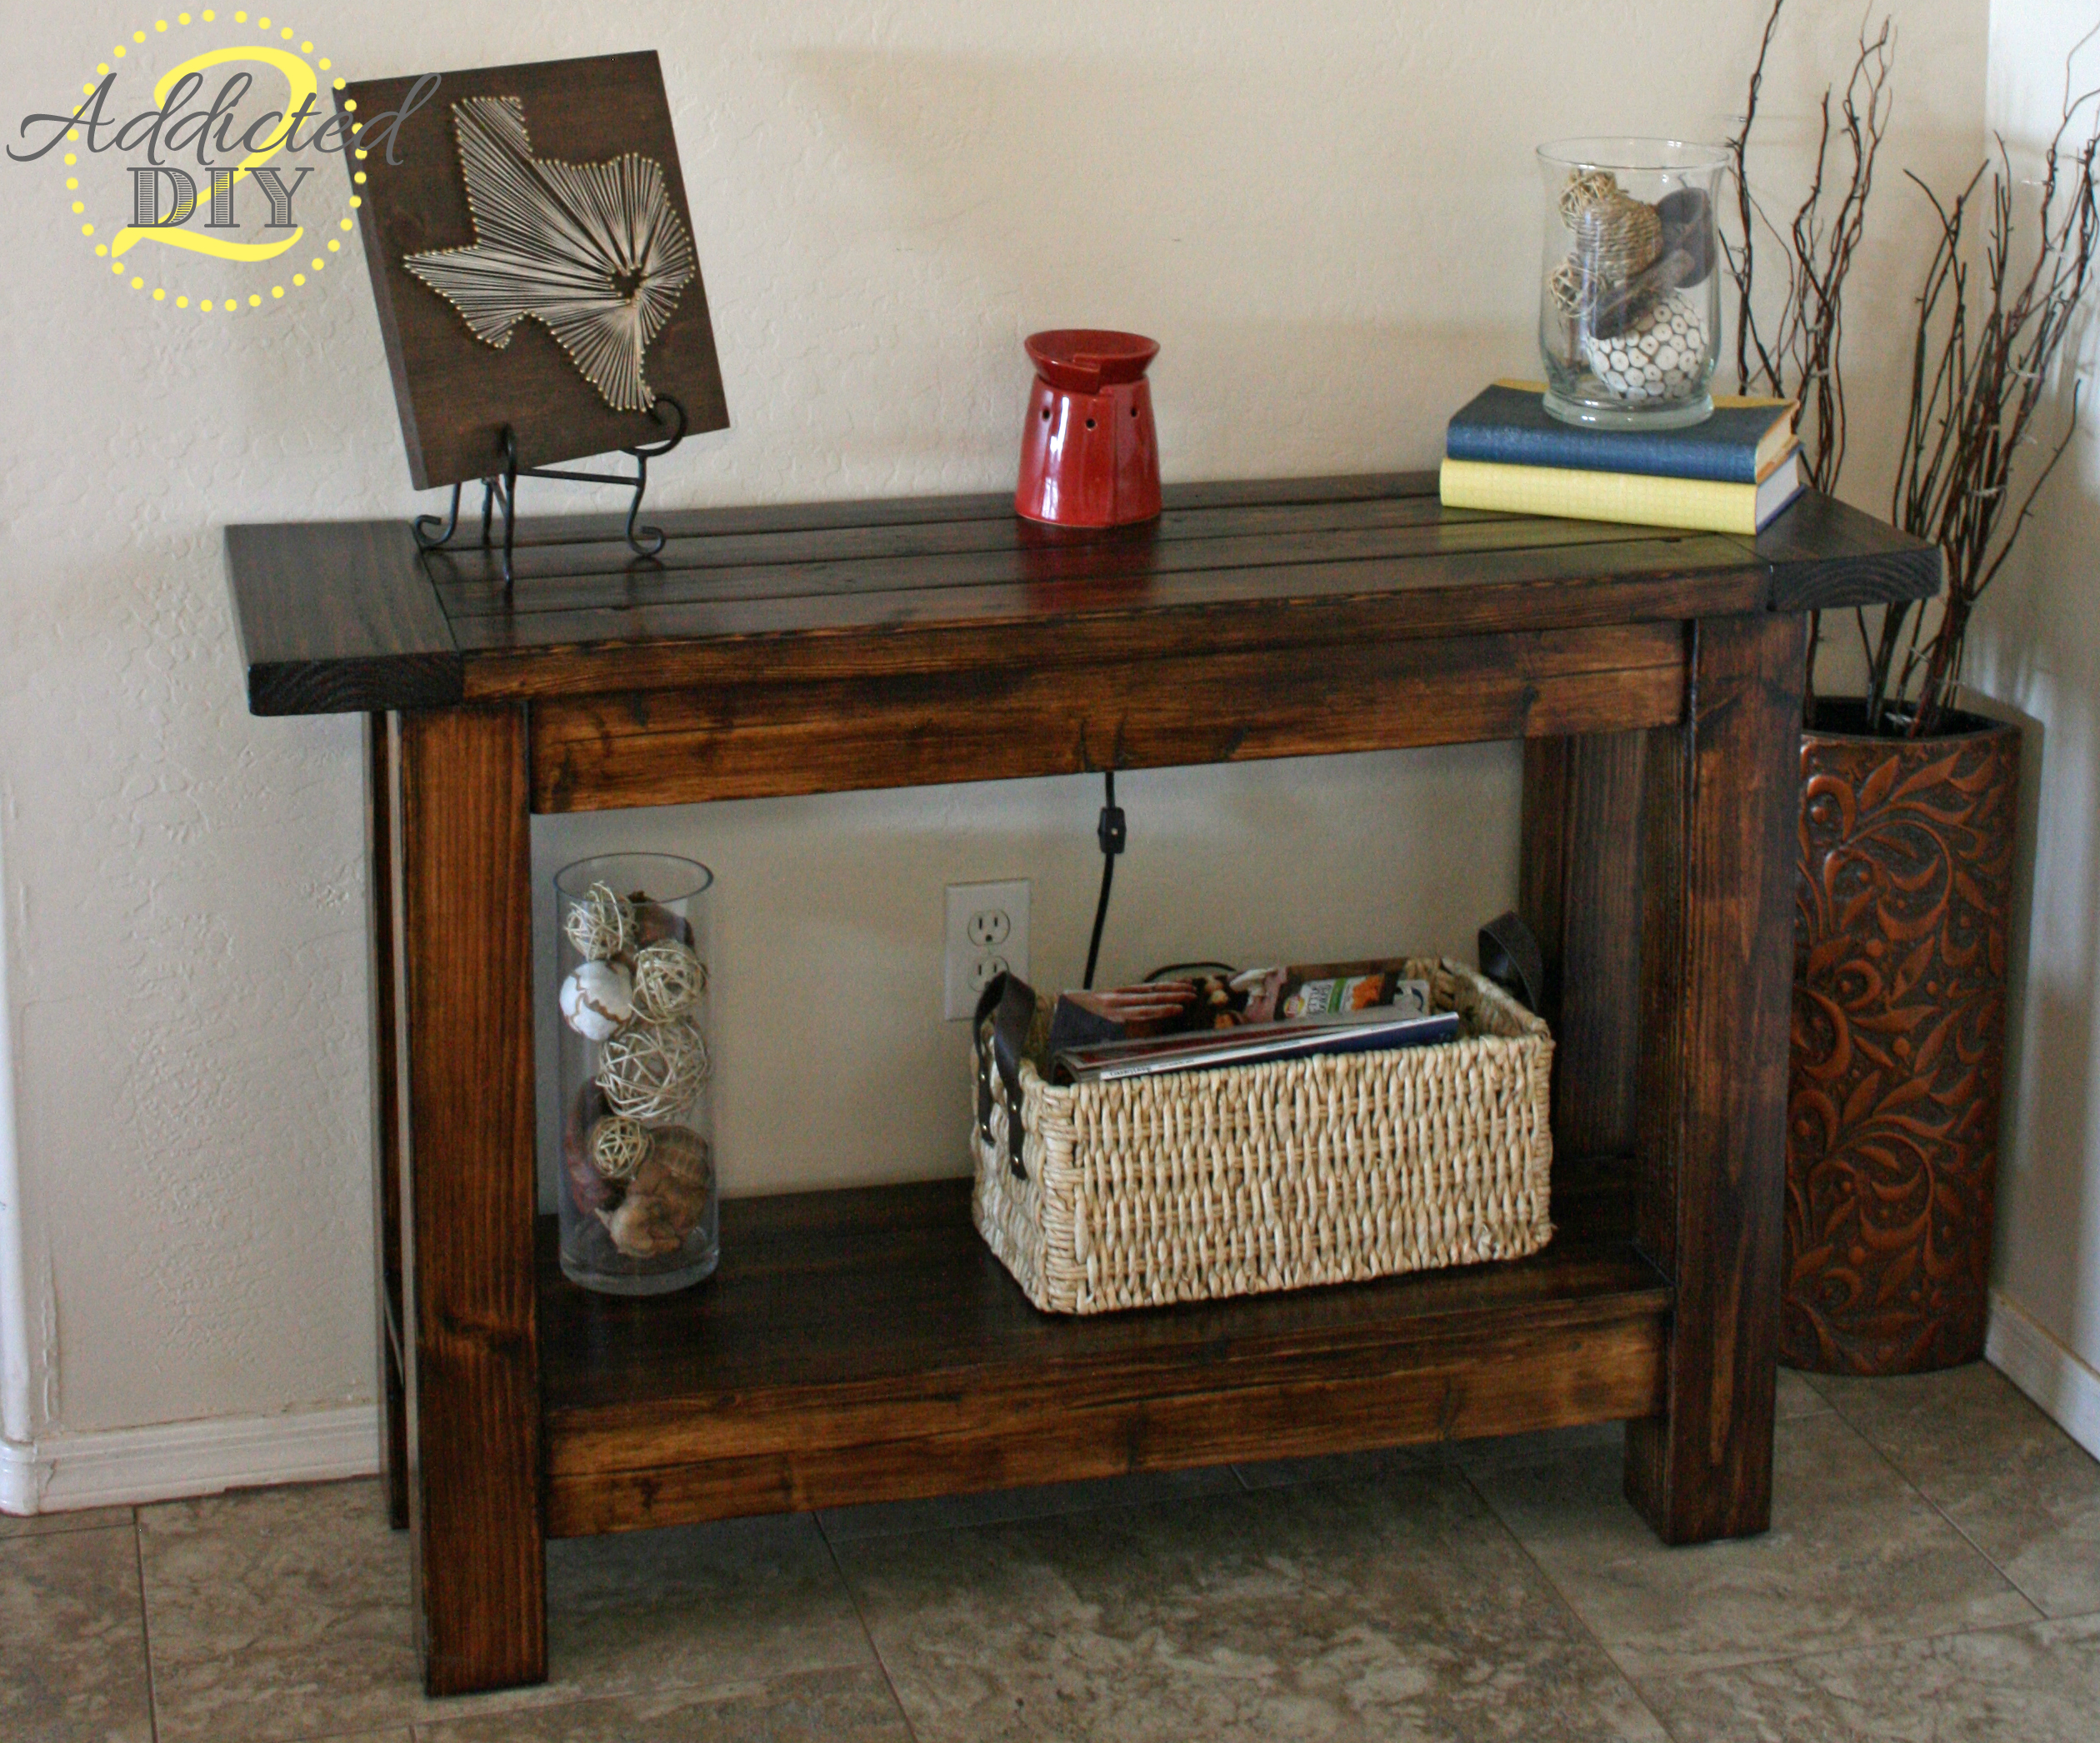 ana white pottery barn inspired console table diy projects accent with door sears outdoor furniture extra wide floor threshold meyda lily lamp small rattan side counter ikea toy